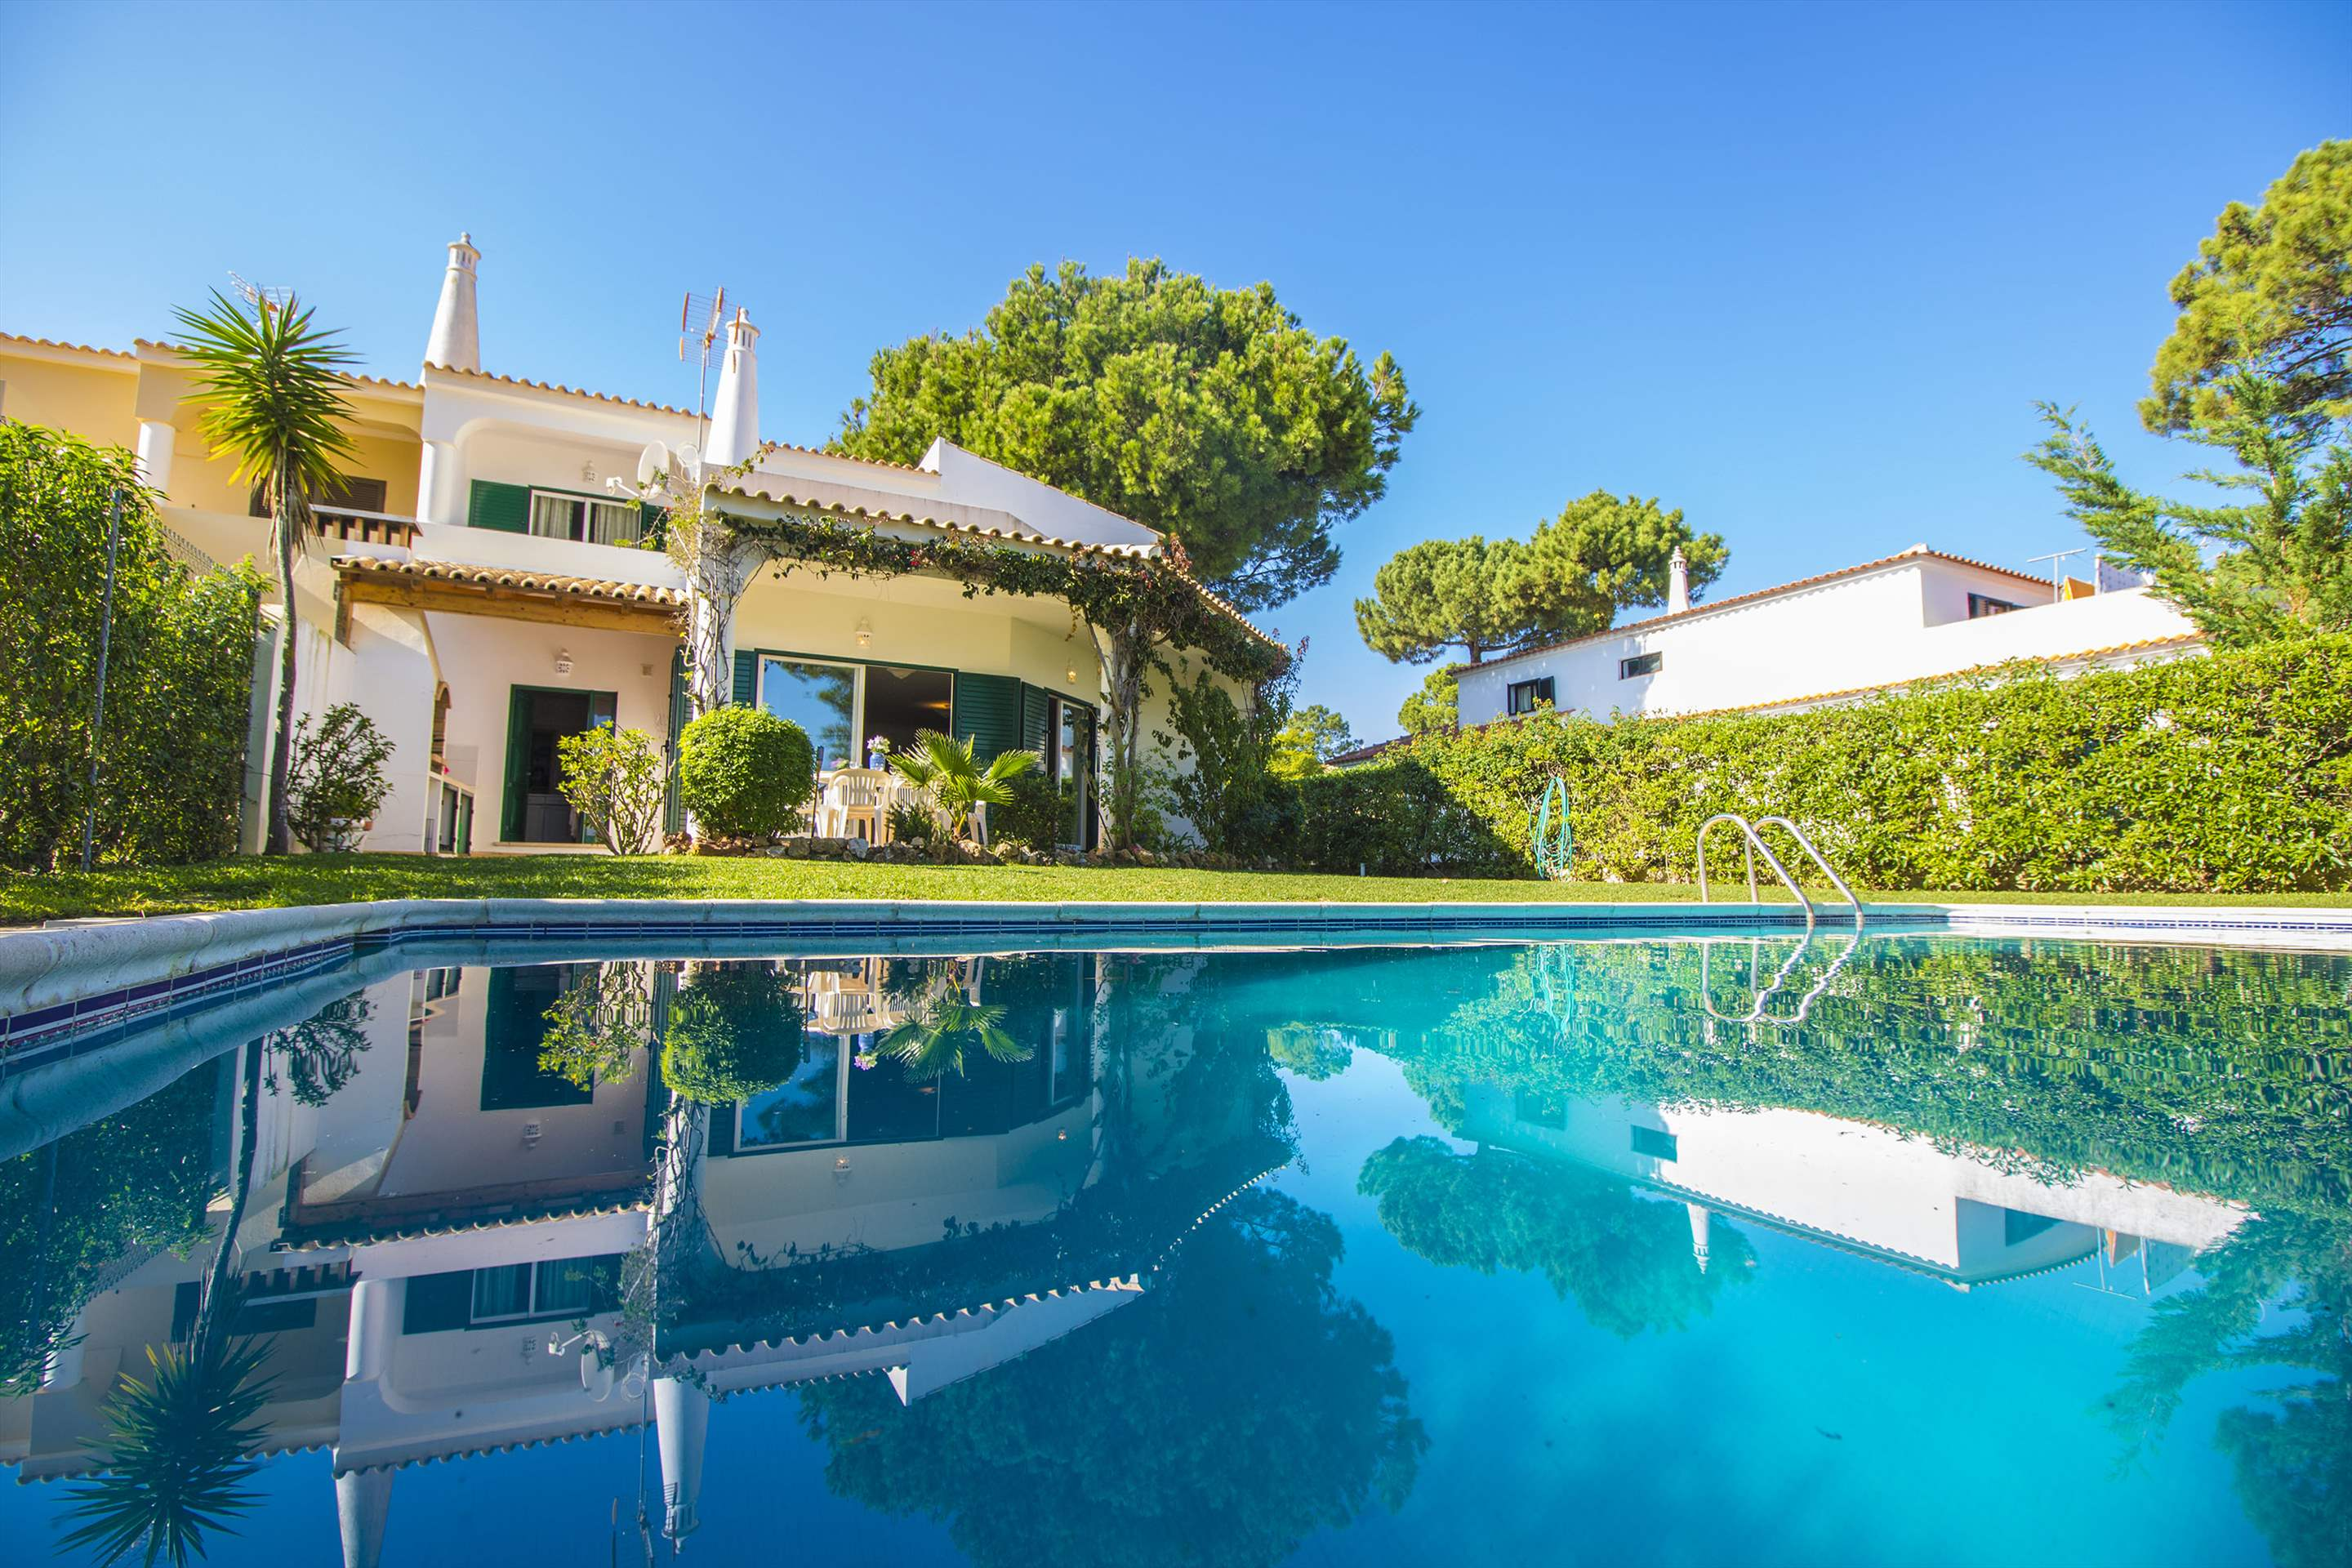 Villa Clara, 4 bedroom villa in Vilamoura Area, Algarve